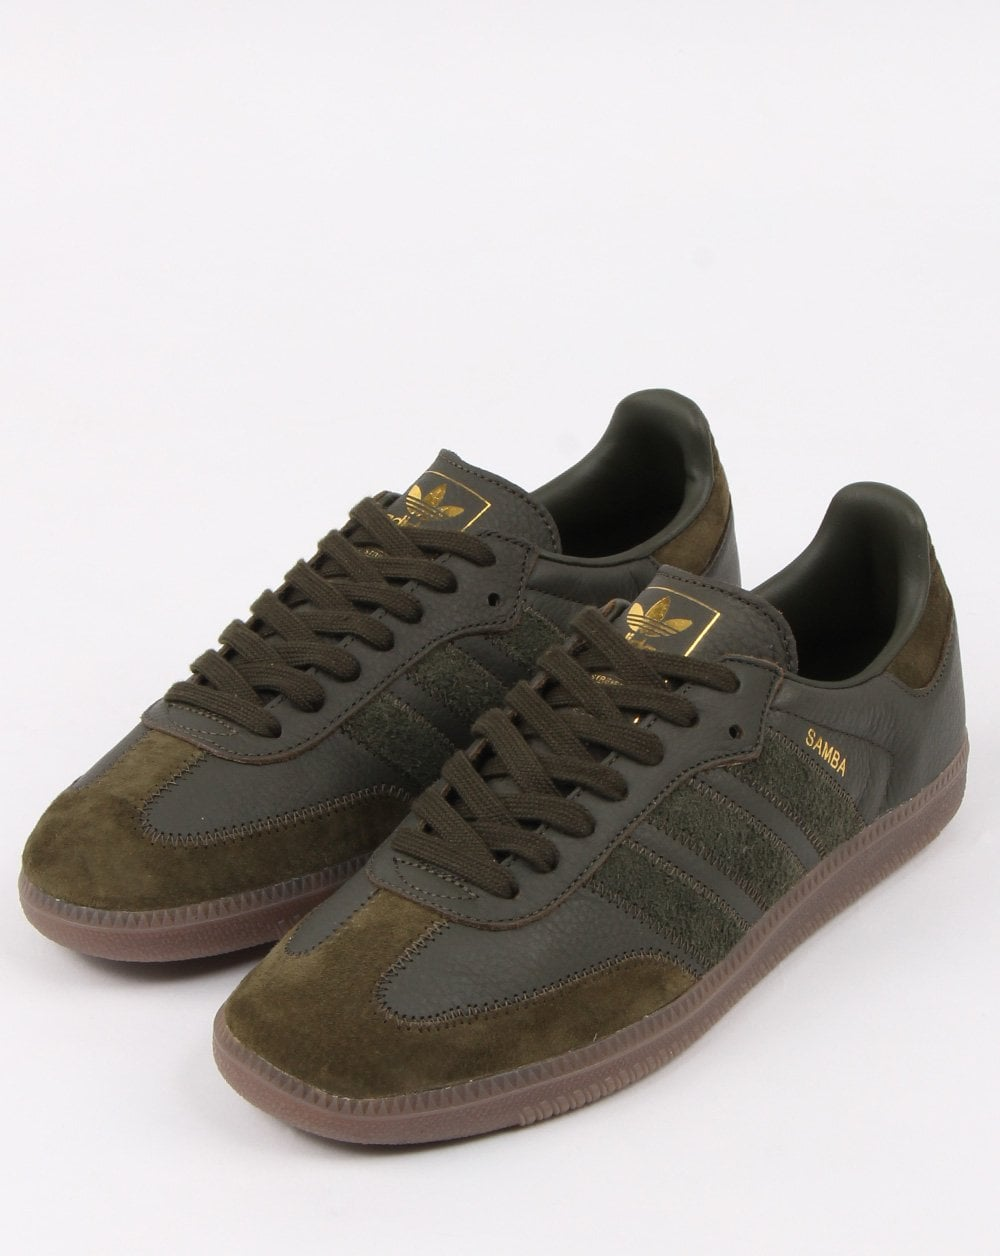 Adidas Samba Og Ft Trainers Night Cargo